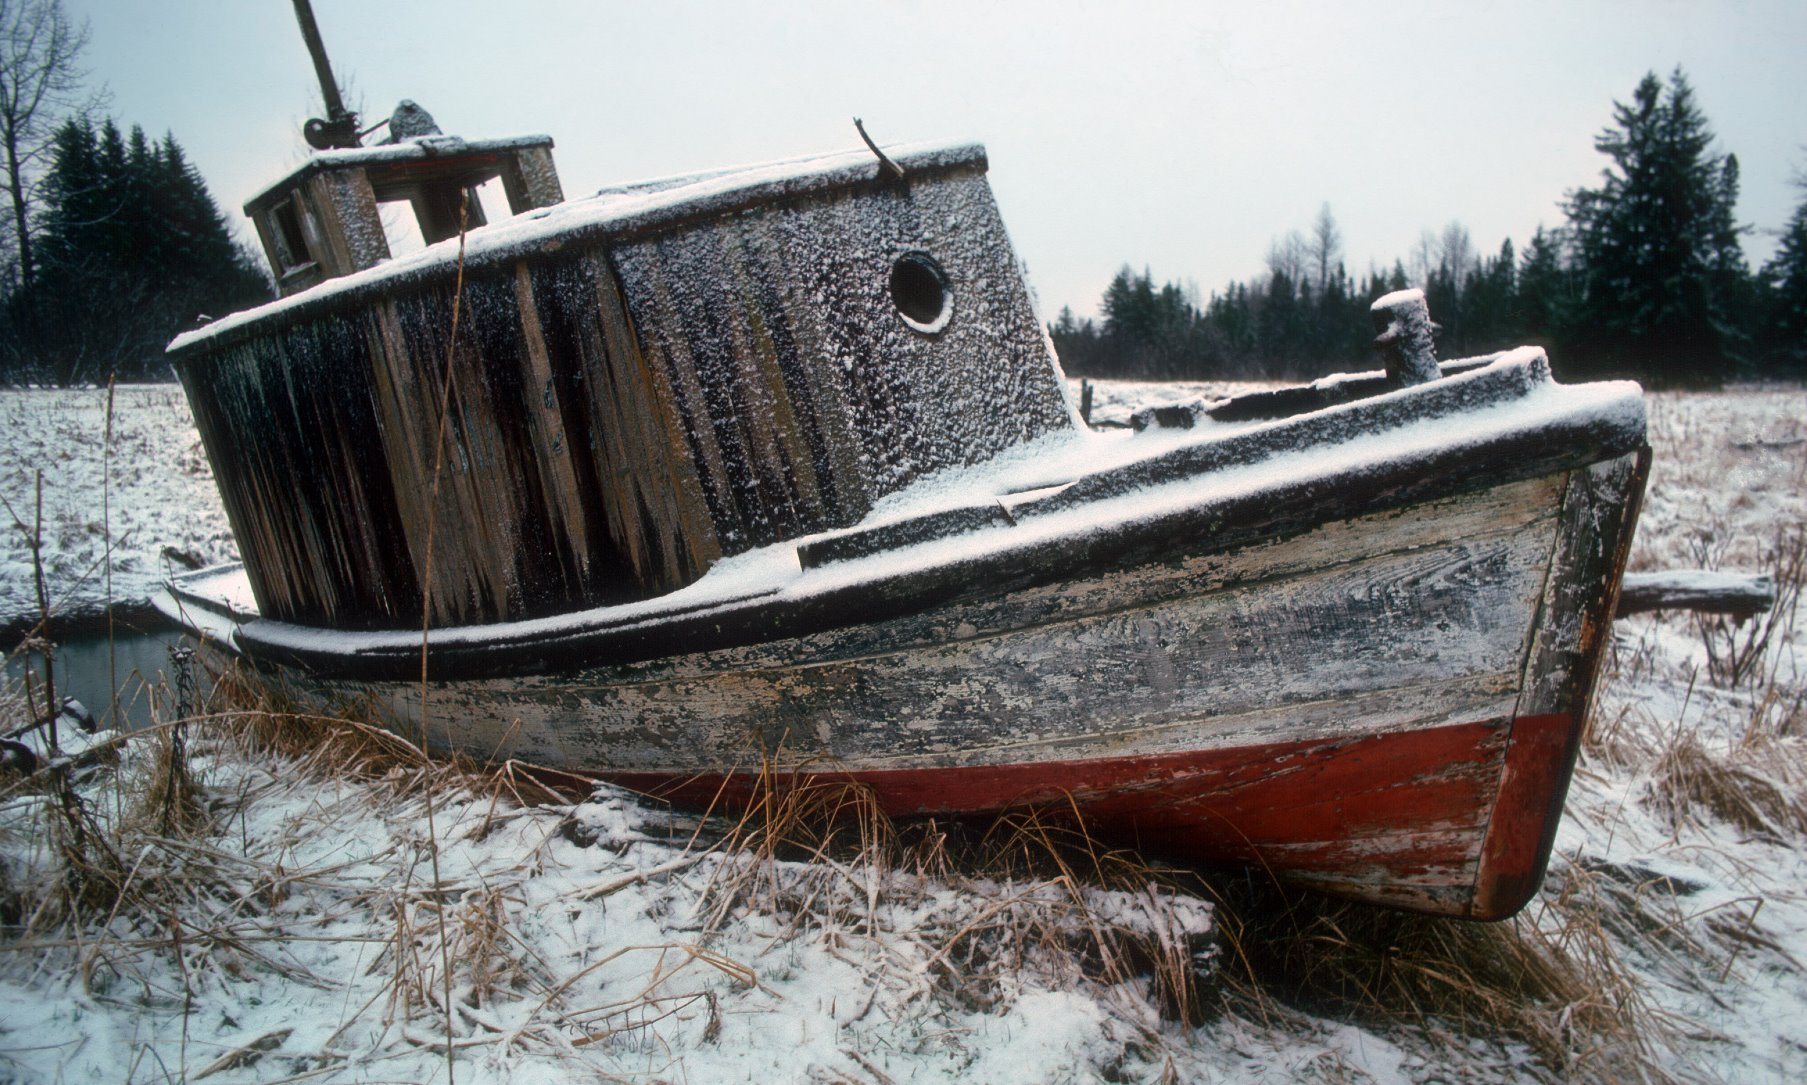 Boats used to explore Glacier Bay - far cry from modern cruise ships.